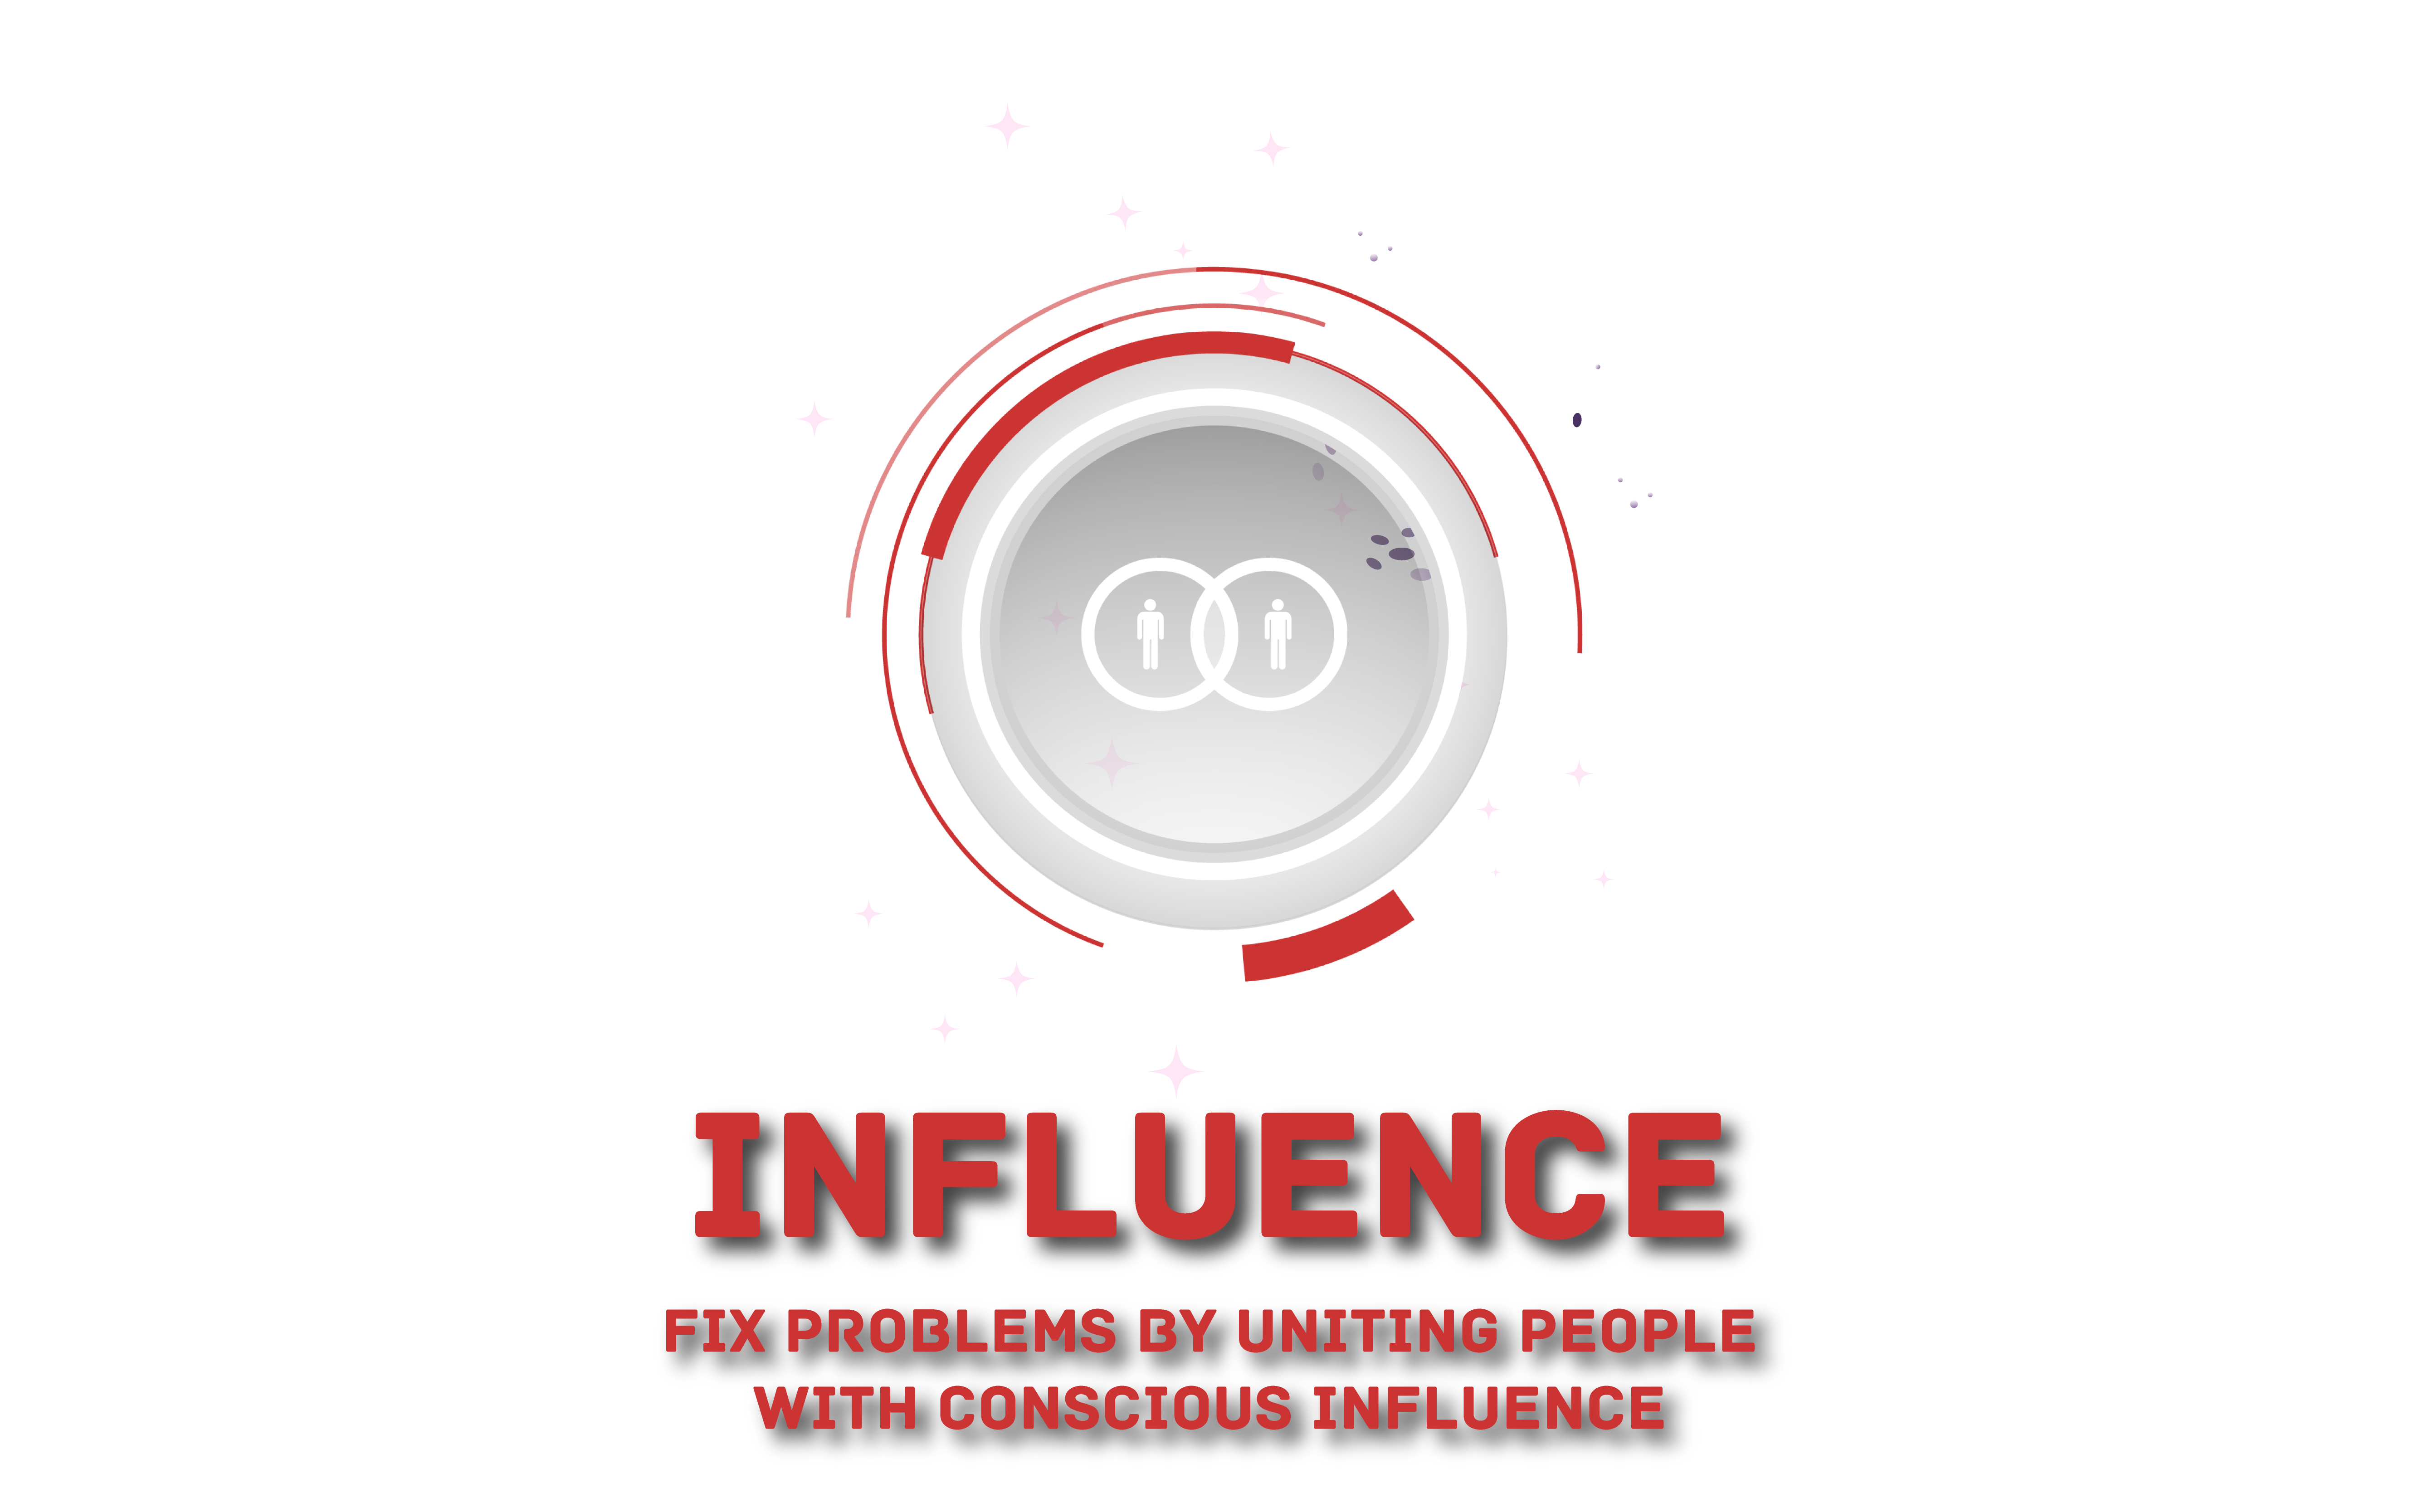 Influence with Slogan